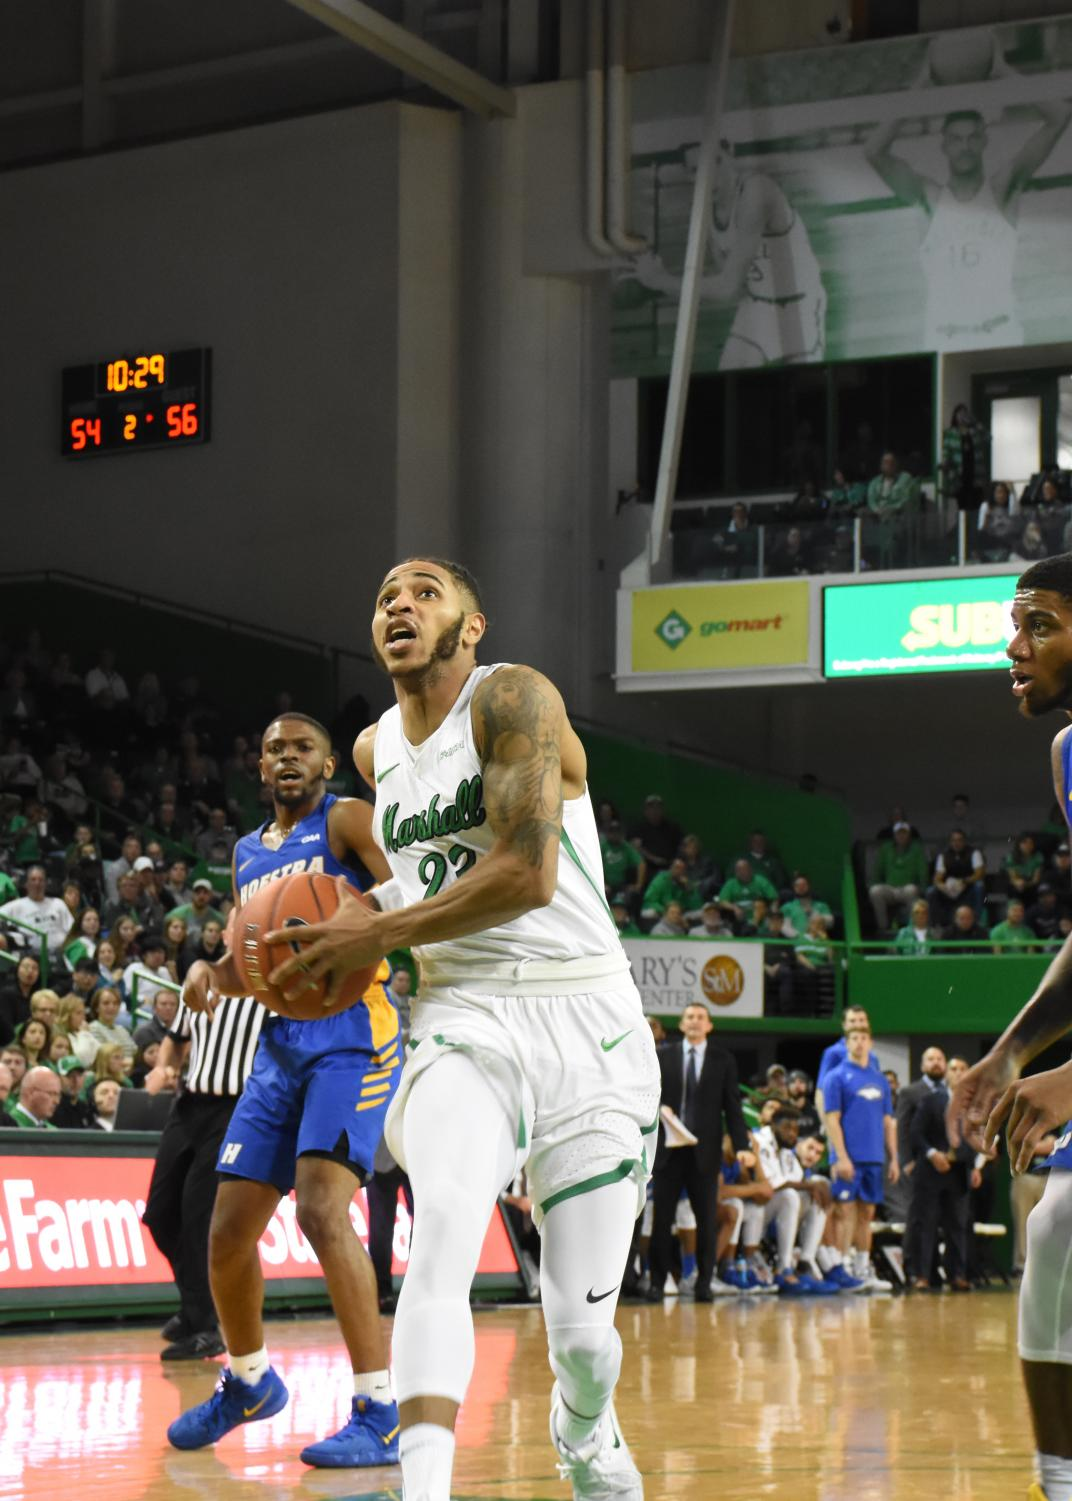 Marshall senior guard Rondale Watson drives through Hofstra defenders in the paint. Watson has 14 points in Marshall's win over the Pride.